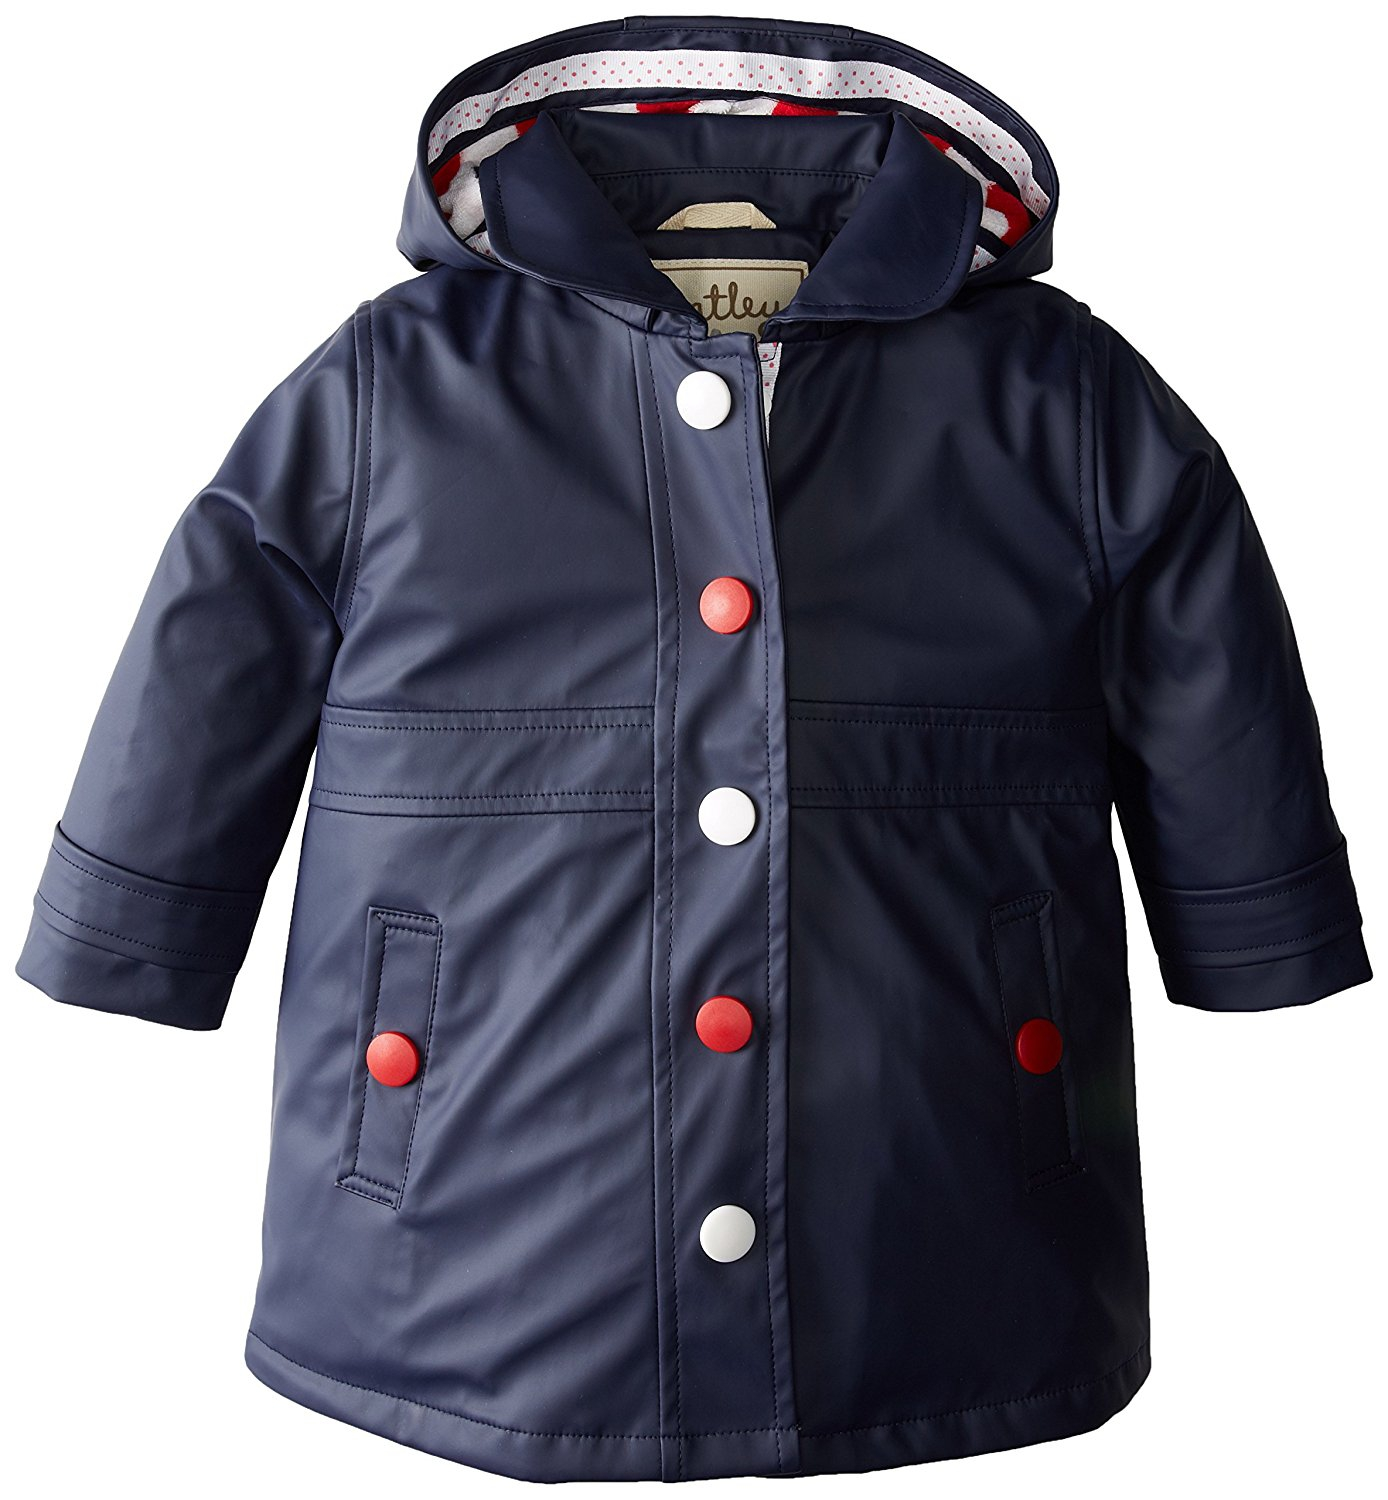 Hatley Girls' Solid Splash Jacket